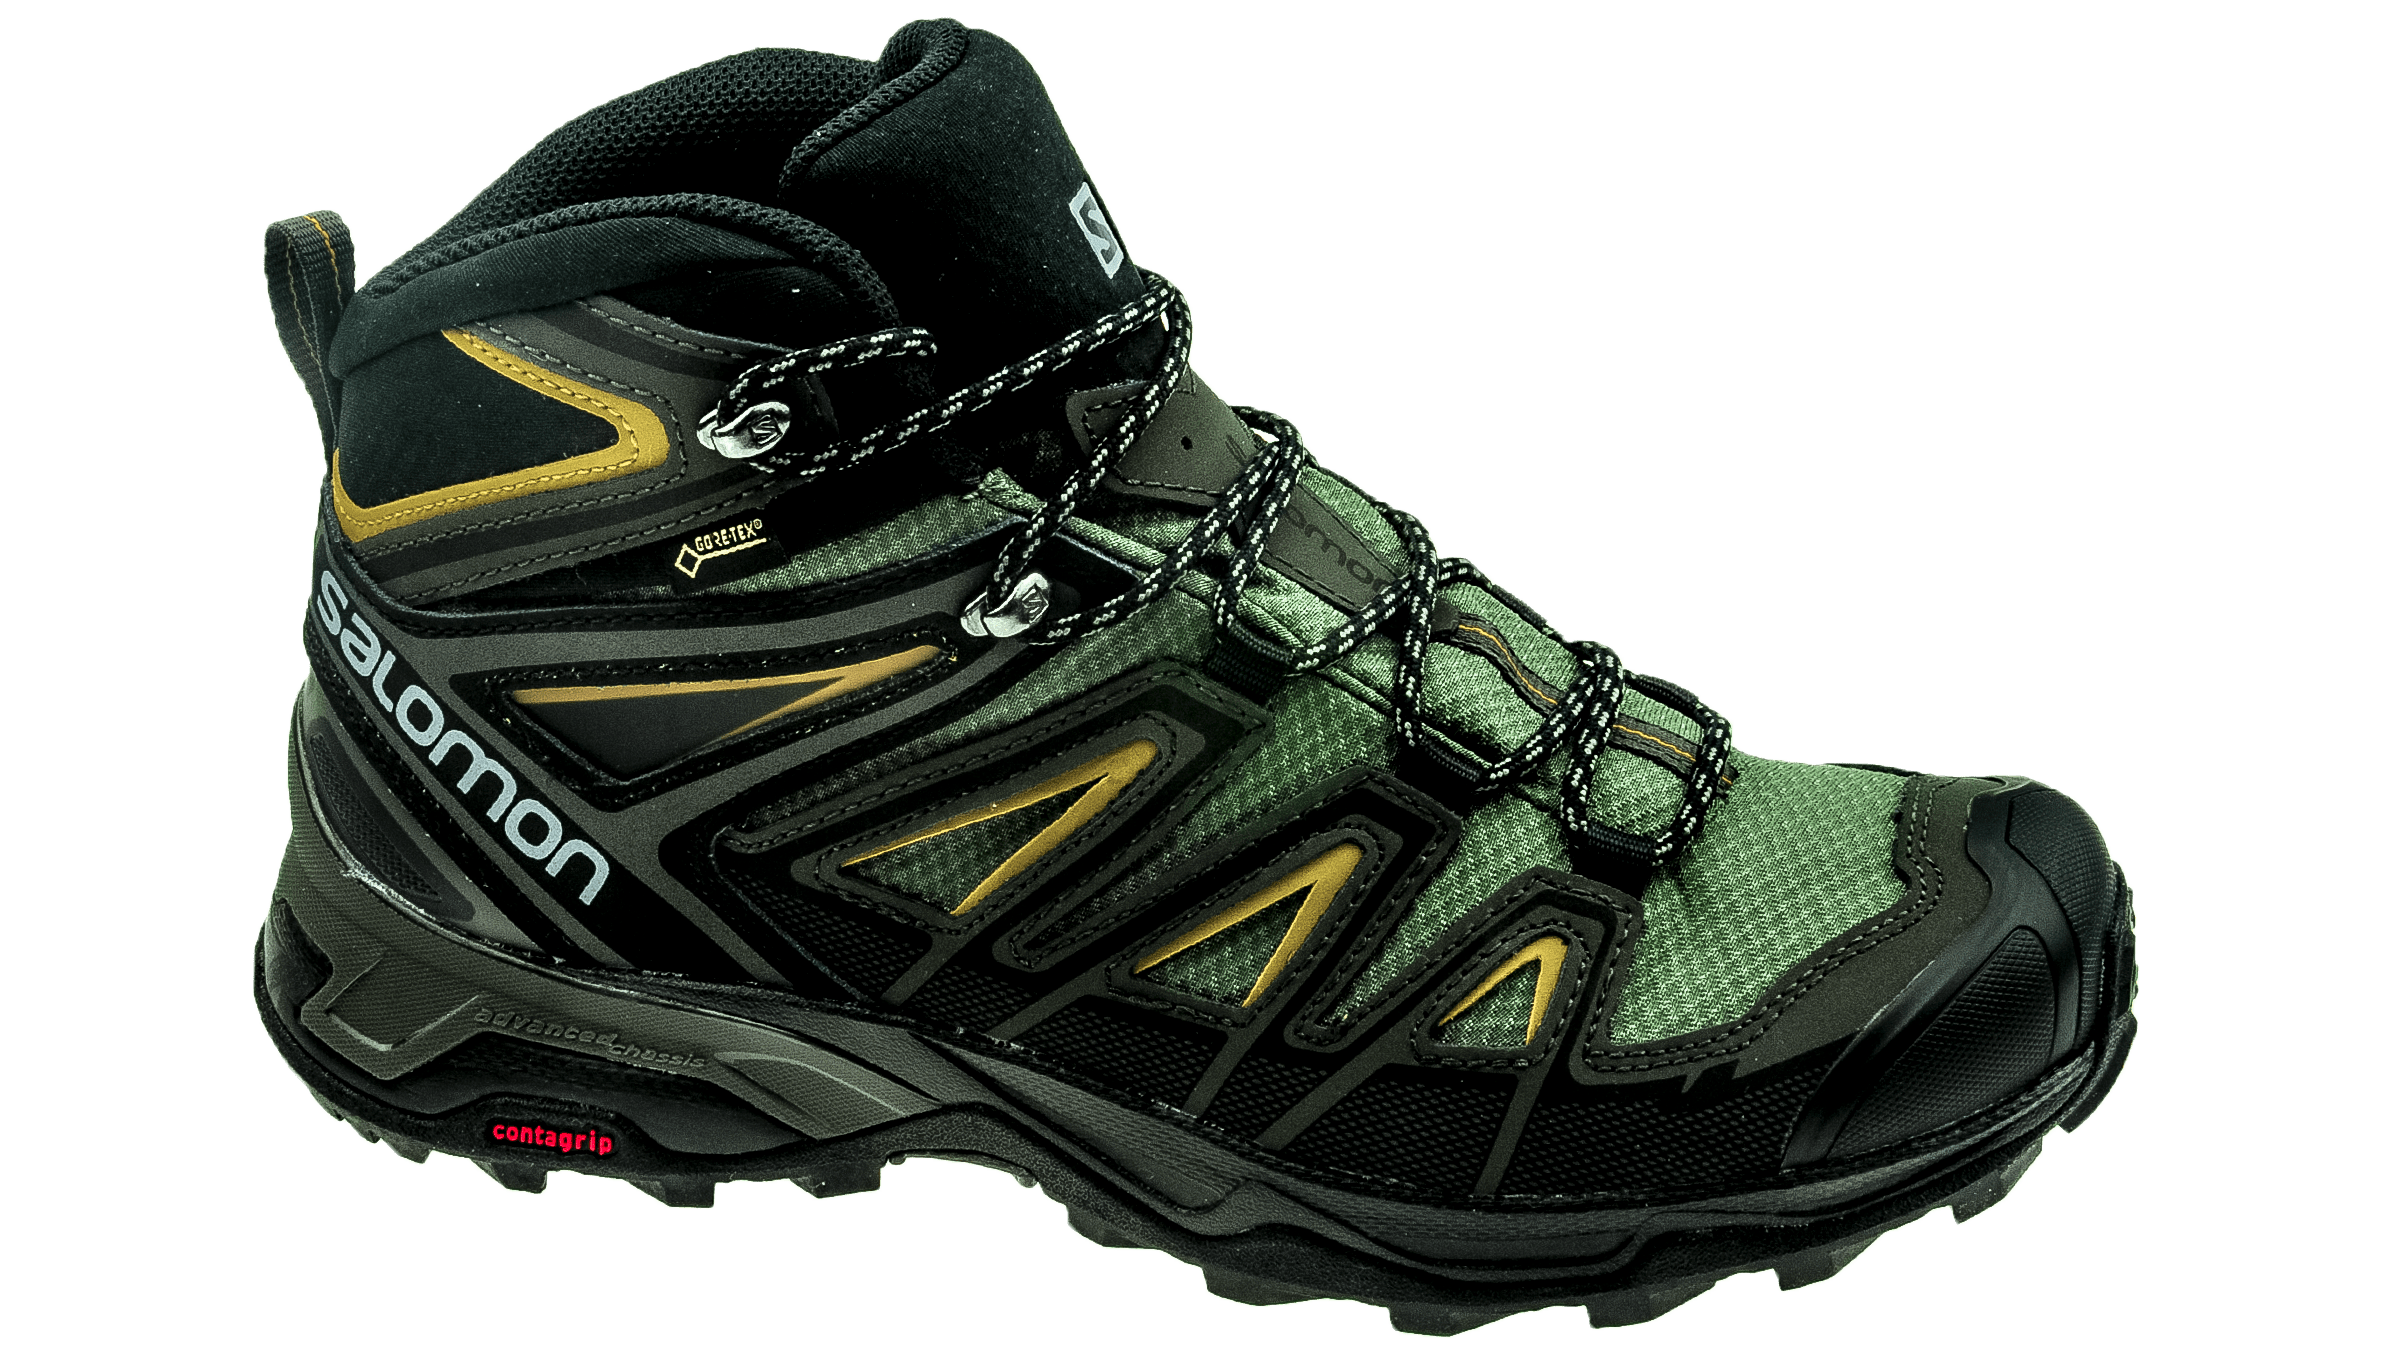 finest selection 82259 40172 Salomon X Ultra Mid 3 GTX Castor Gray/Black/Green Sulphur